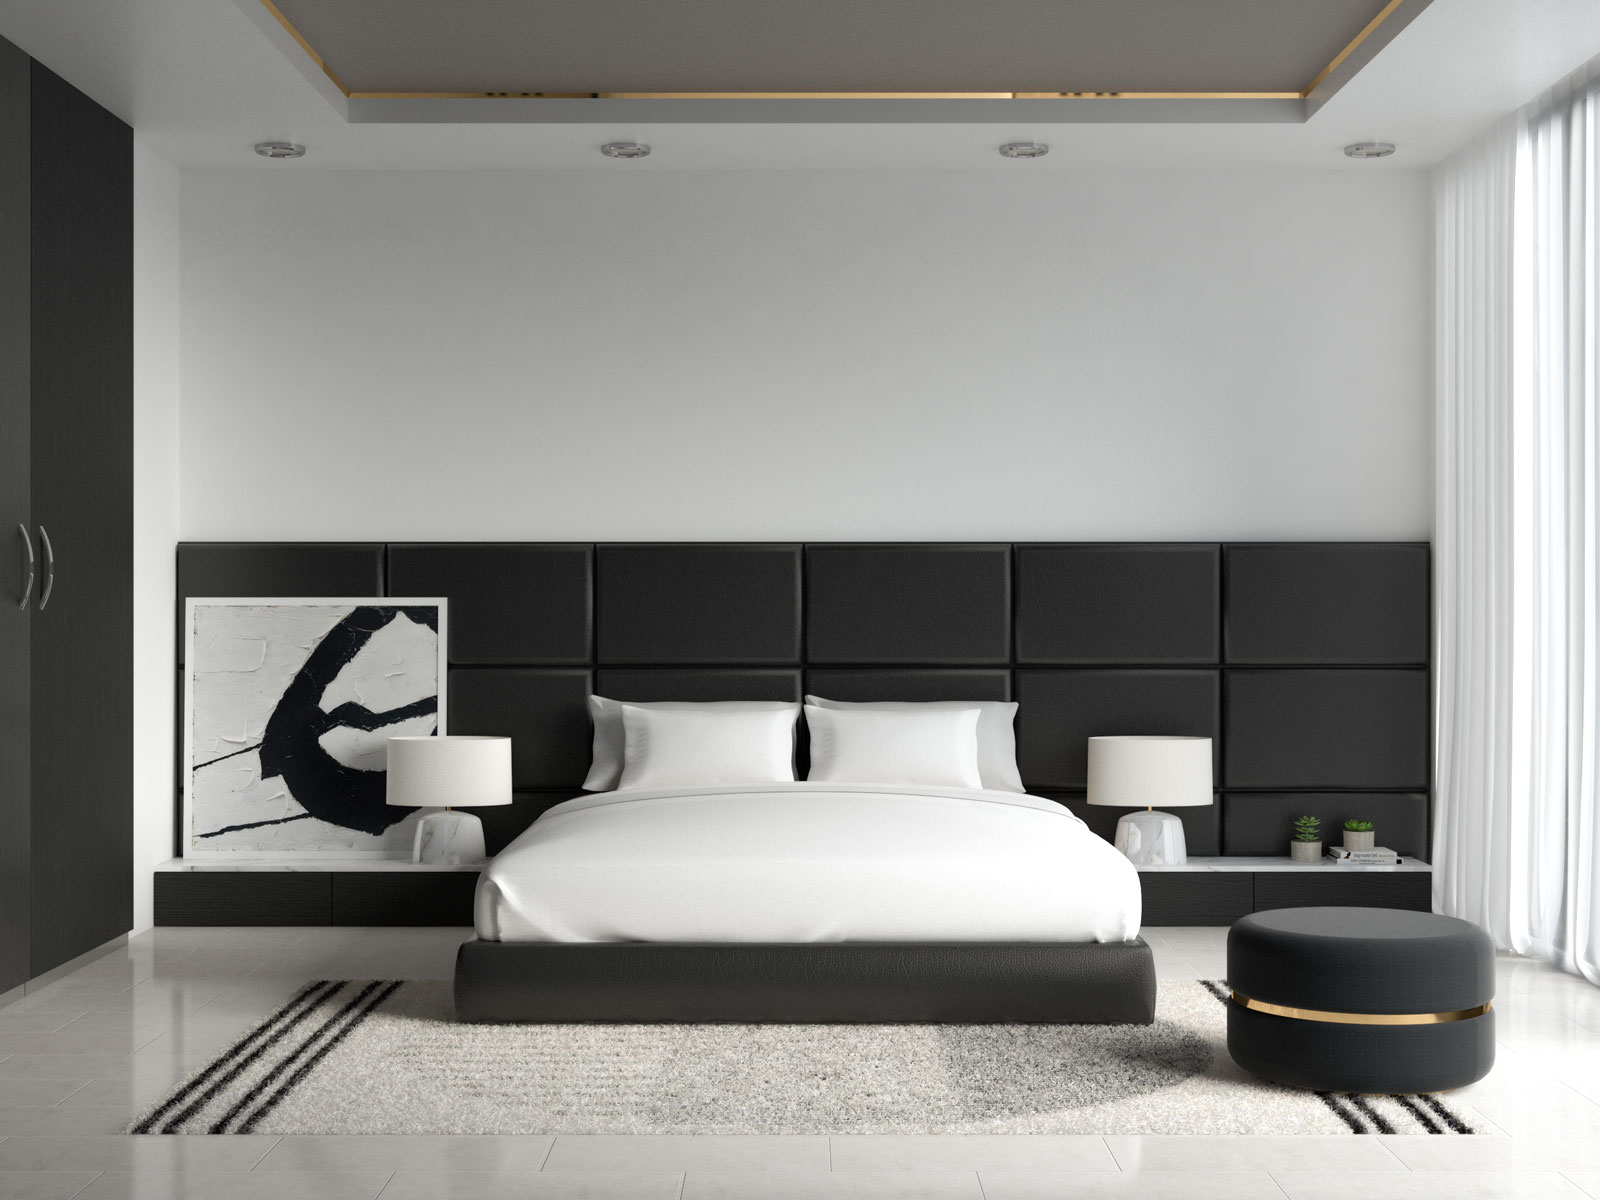 White bedding with black furniture